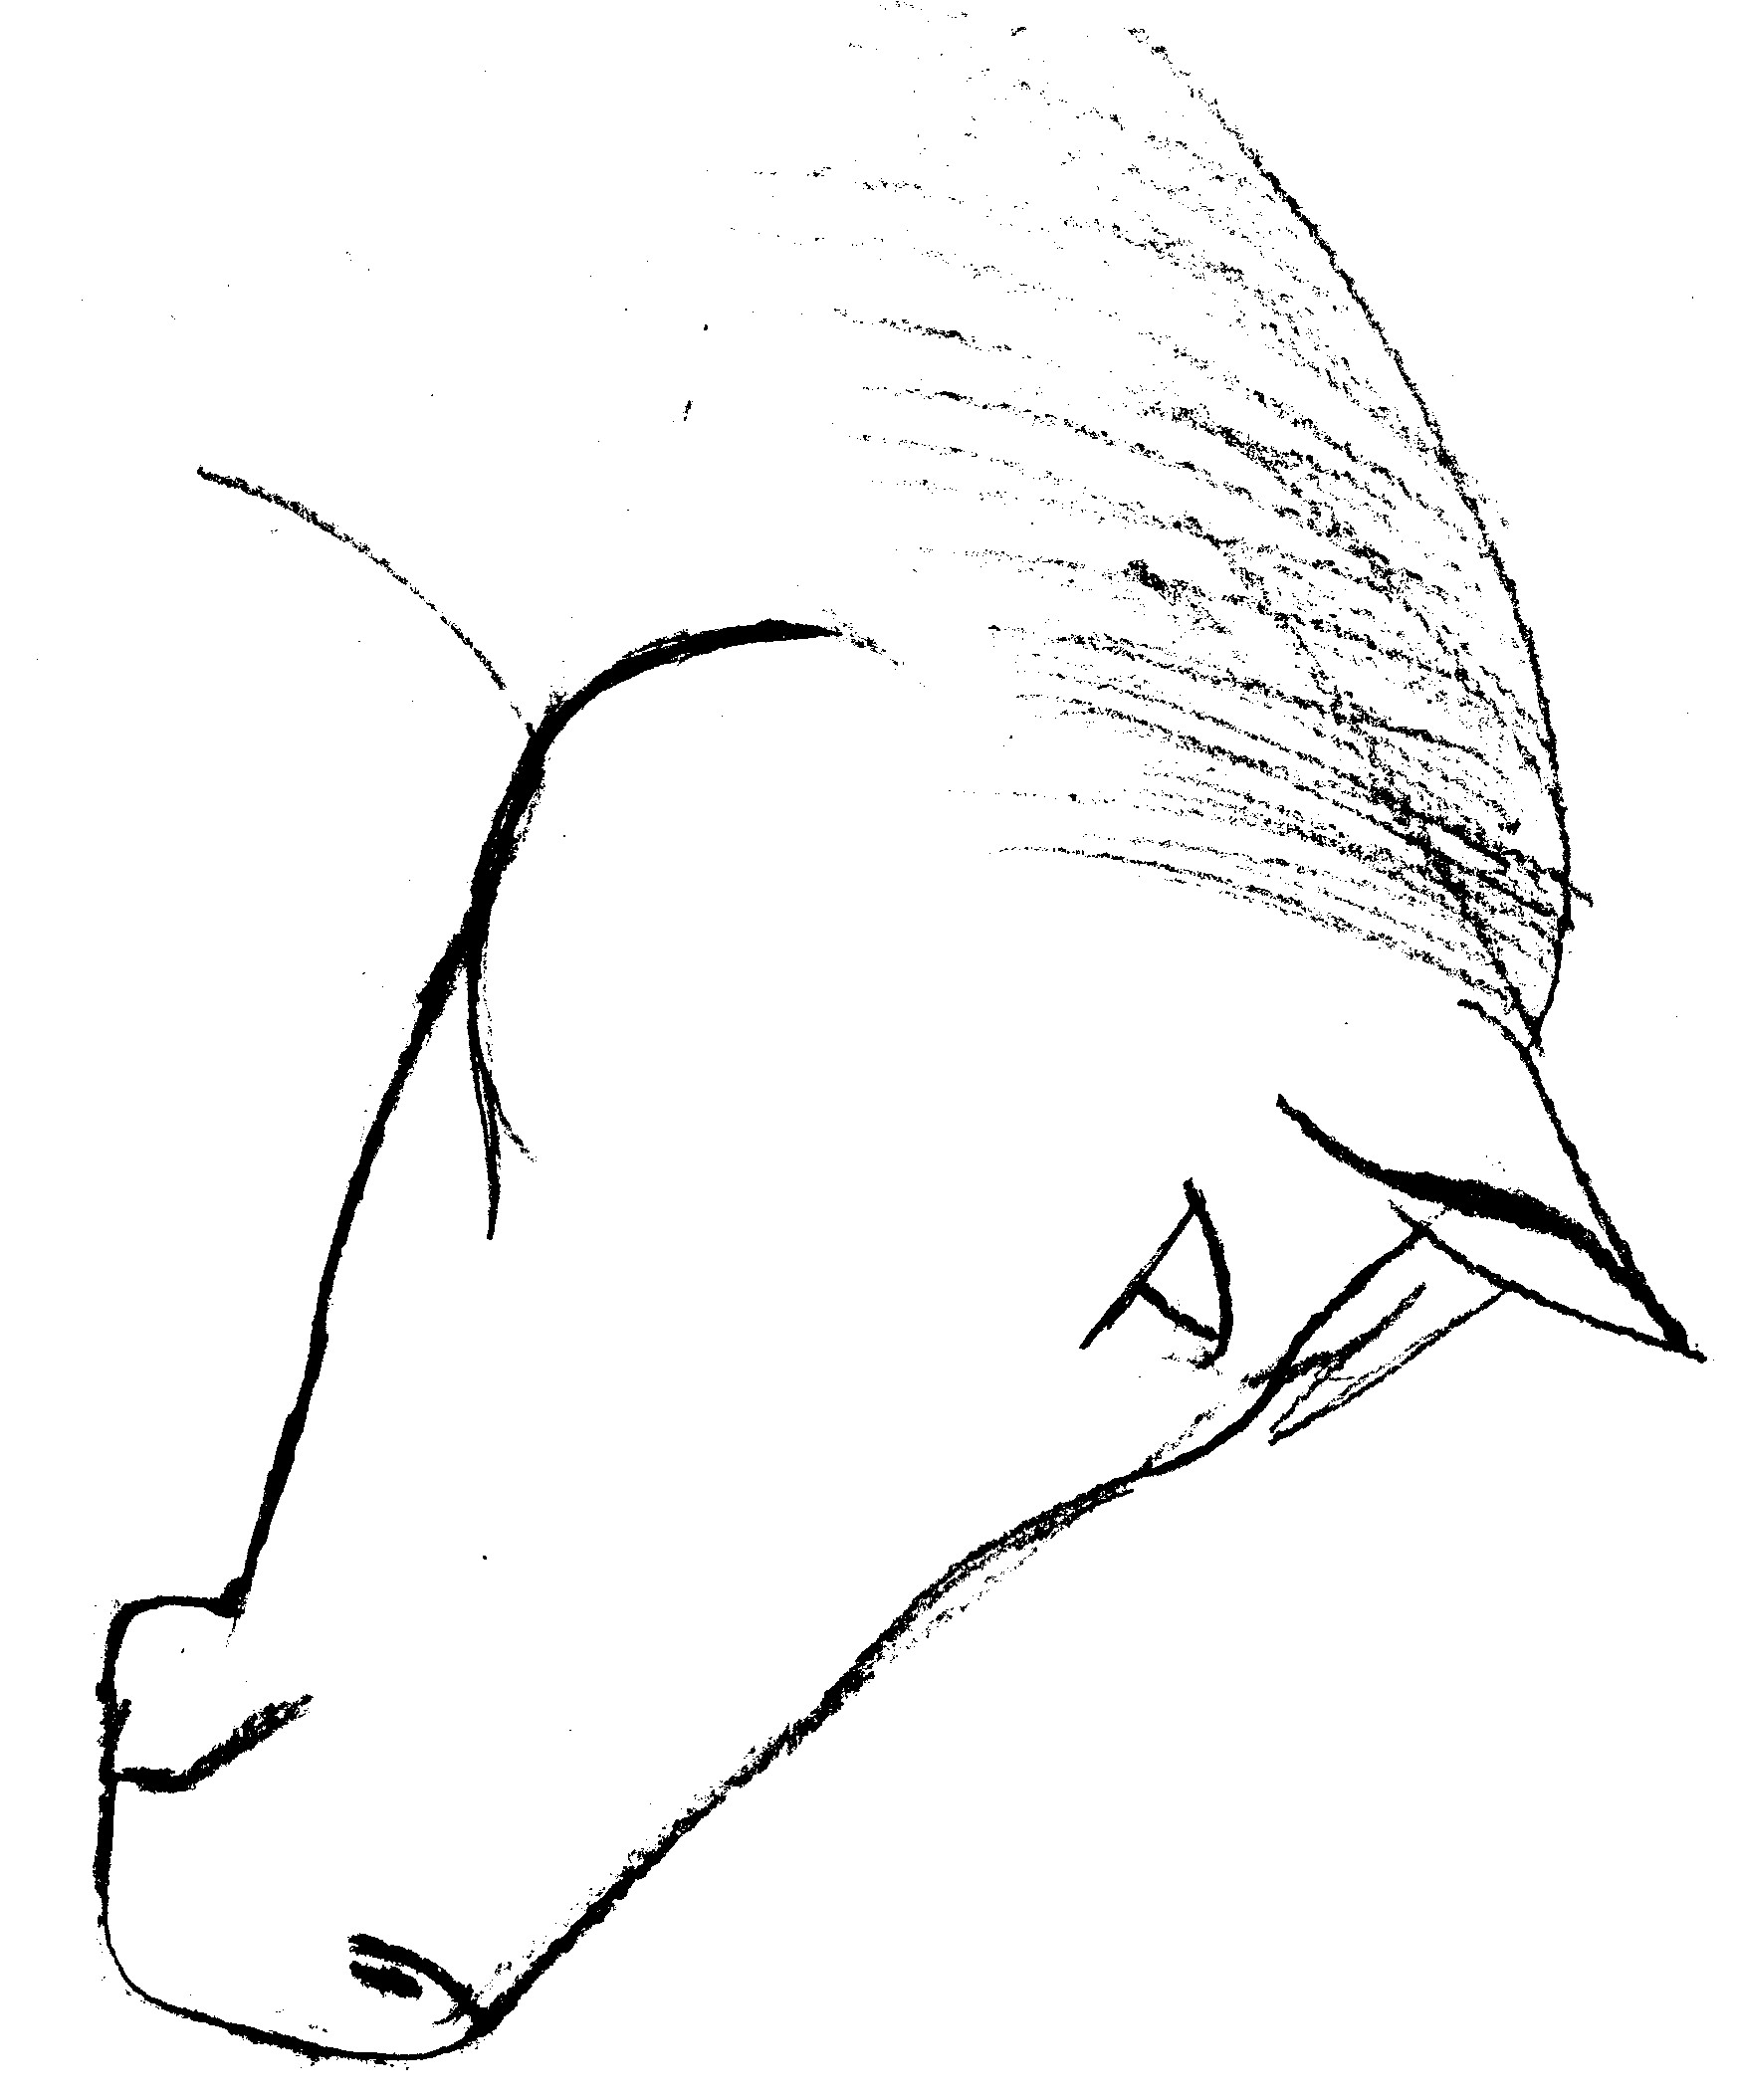 Line Drawing Horse Head : Horse head drawing delazious clipart best